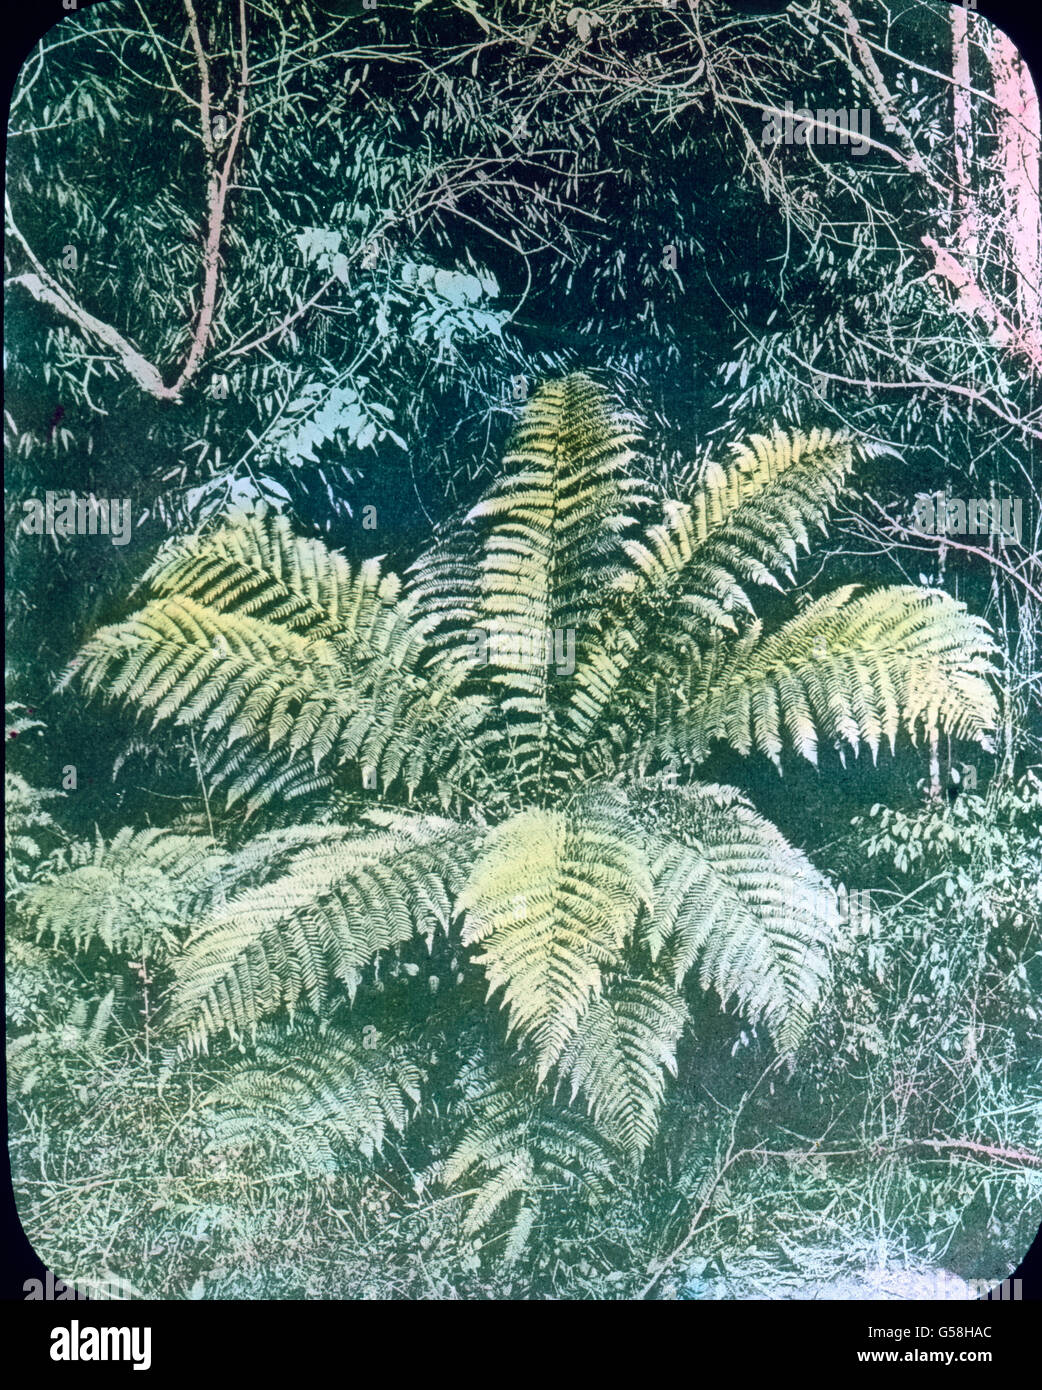 Riesenfarn in der Pflanzenwelt des Dschungels. India, Asia, travel, botany, jungle, plant, brake, fern, 1910s, 20th - Stock Image